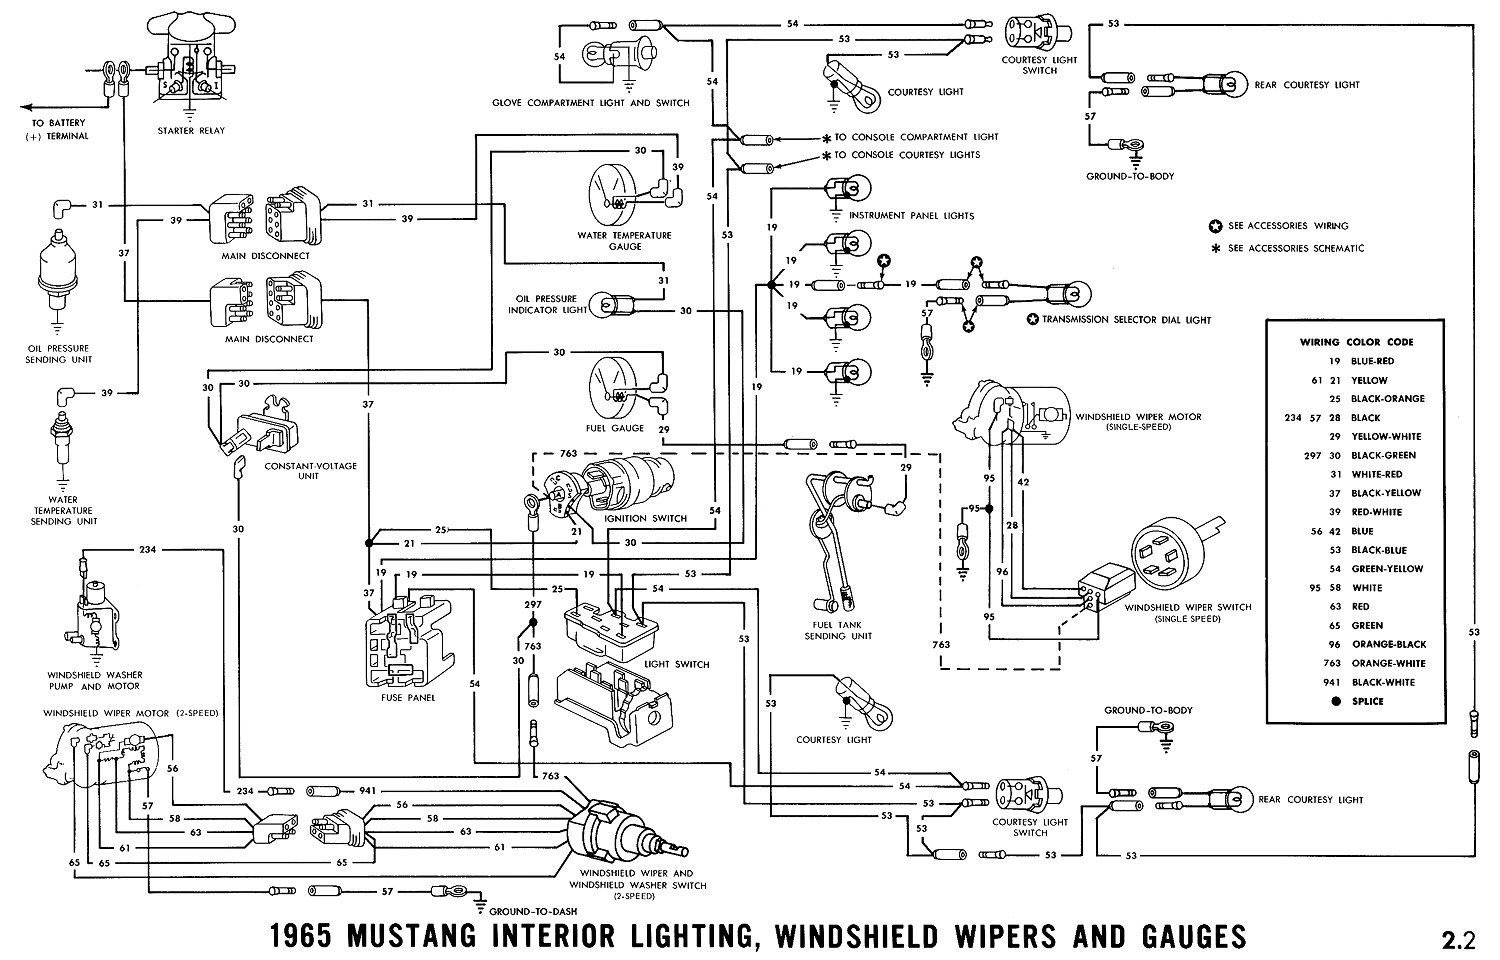 1965g mustang wiring diagrams mustang engine diagram \u2022 free wiring 2005 ford mustang instrument cluster wiring diagram at virtualis.co